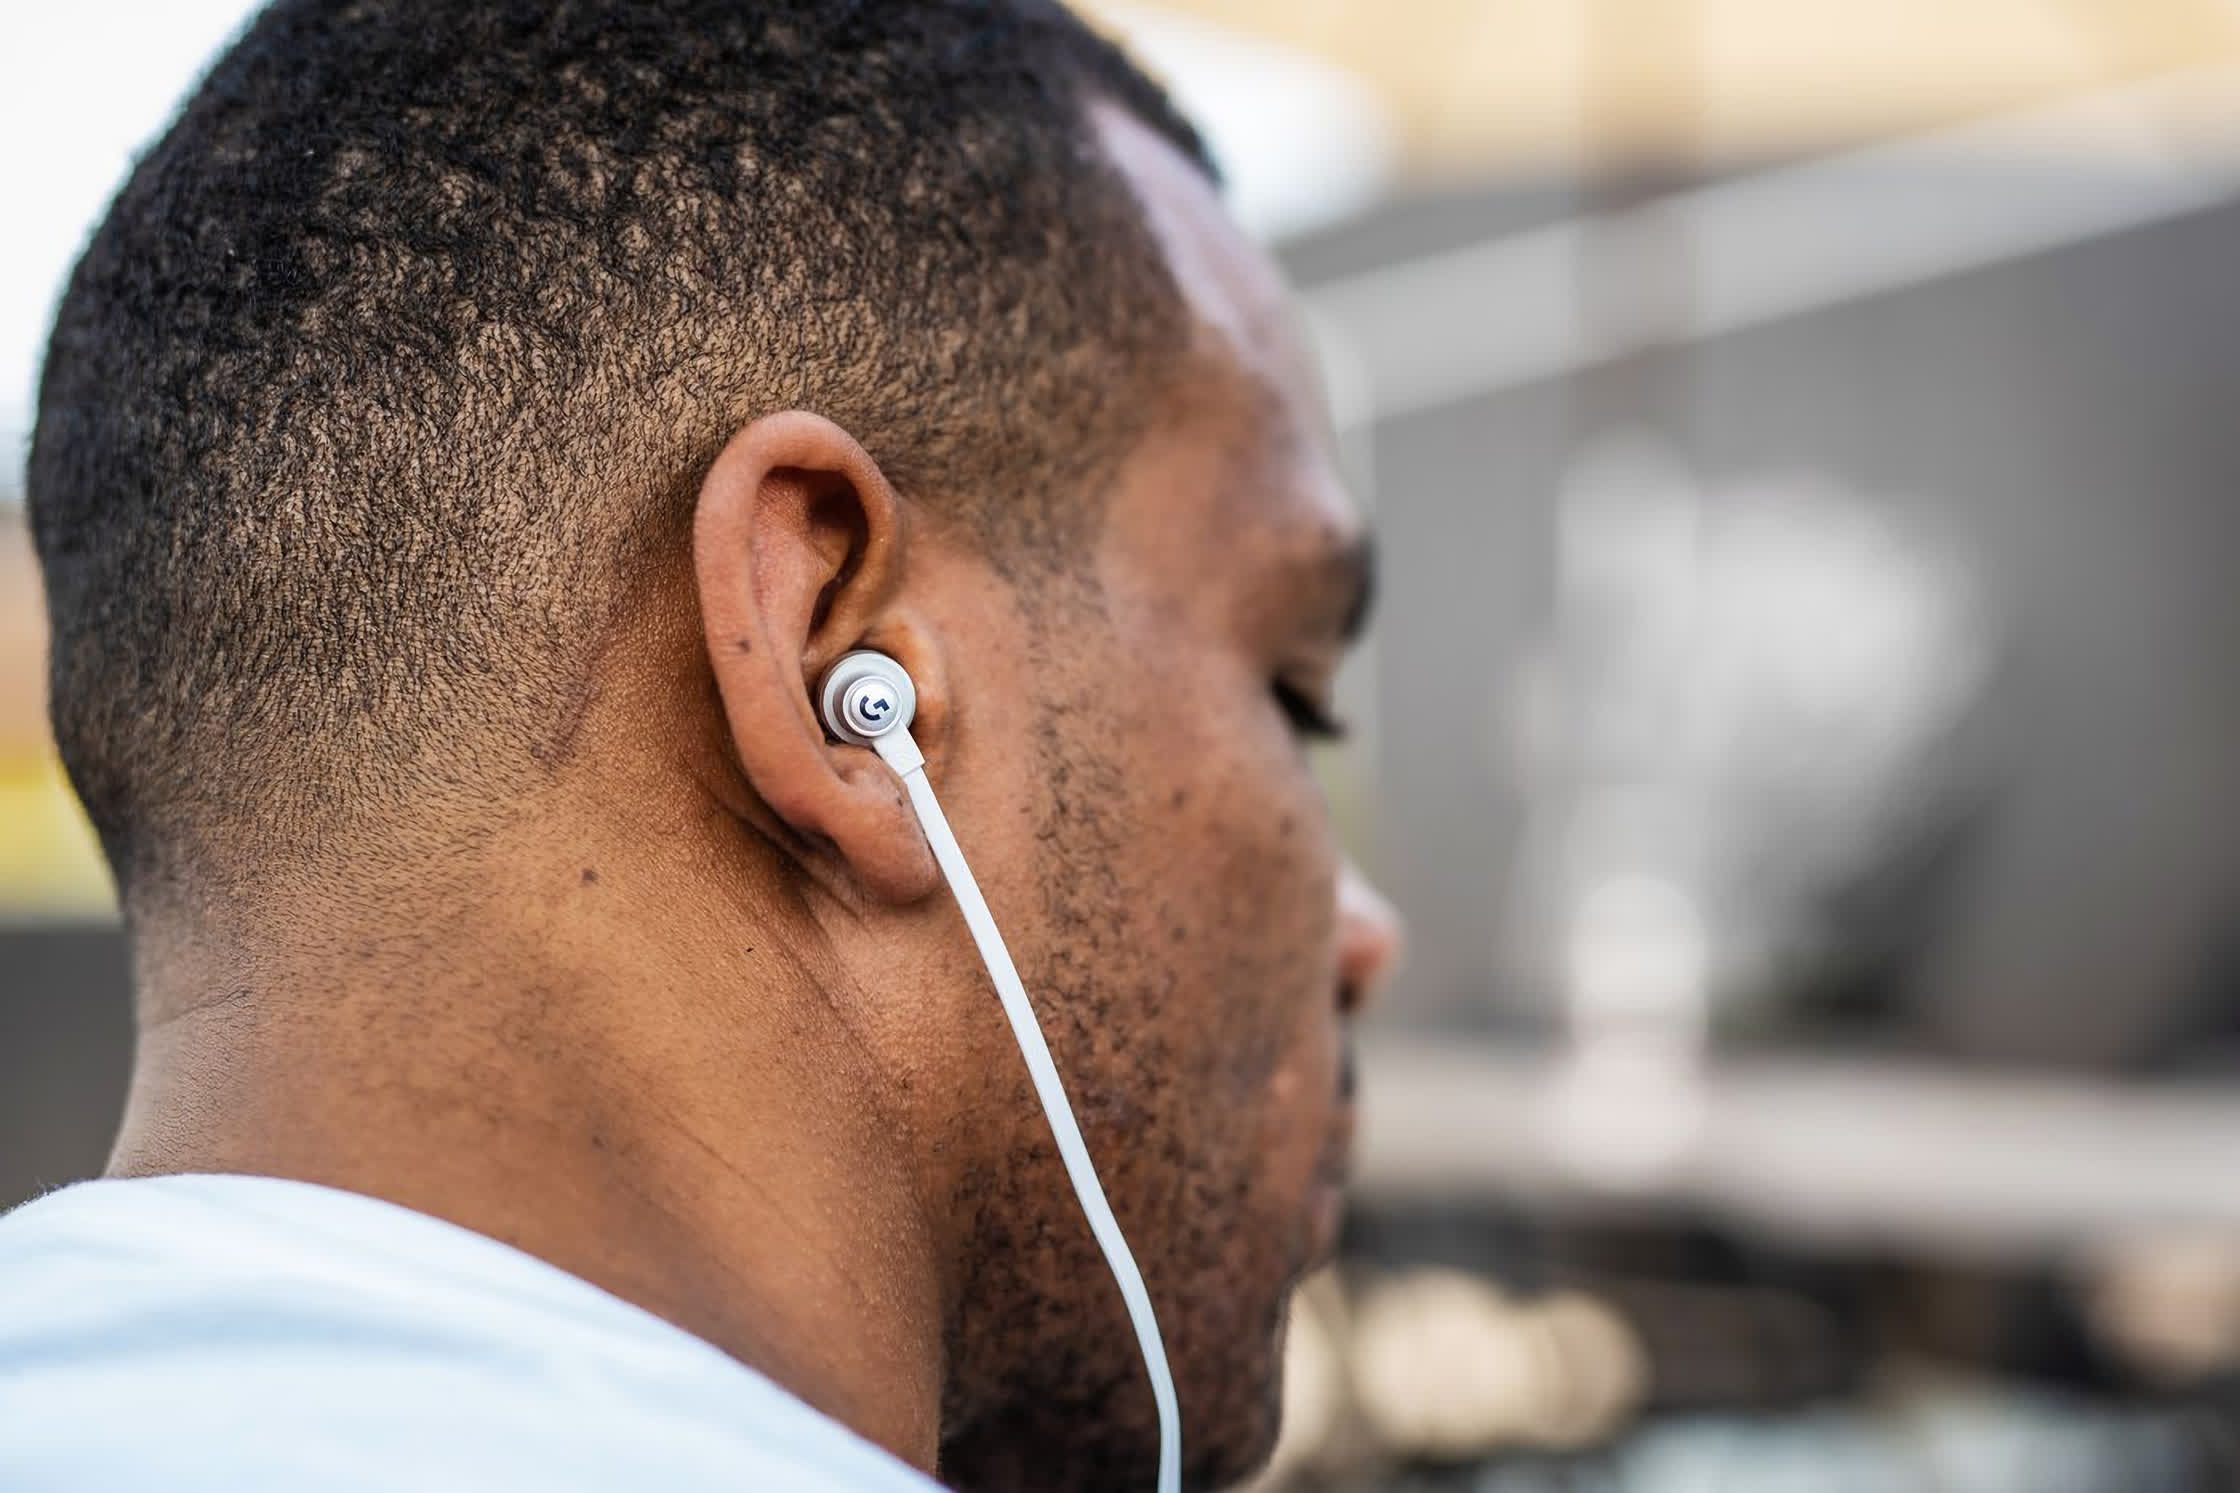 Logitech's G333 wired gaming earphones offer hassle-free audio under $50